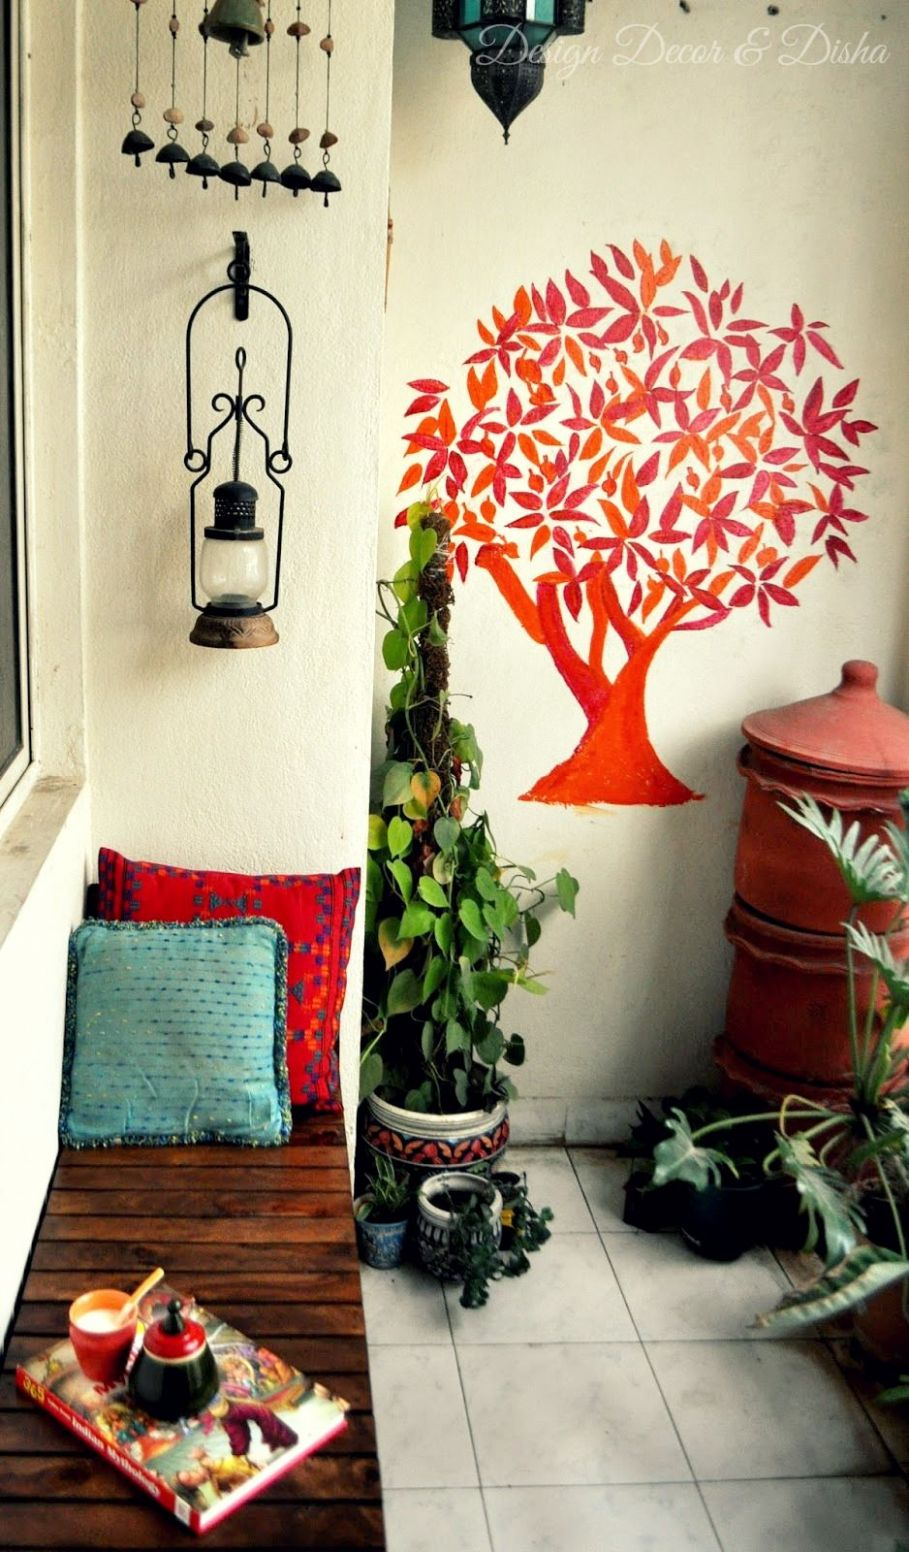 Home Tour: Padmamanasa Jwalaniah | Balcony decor, Apartment ..